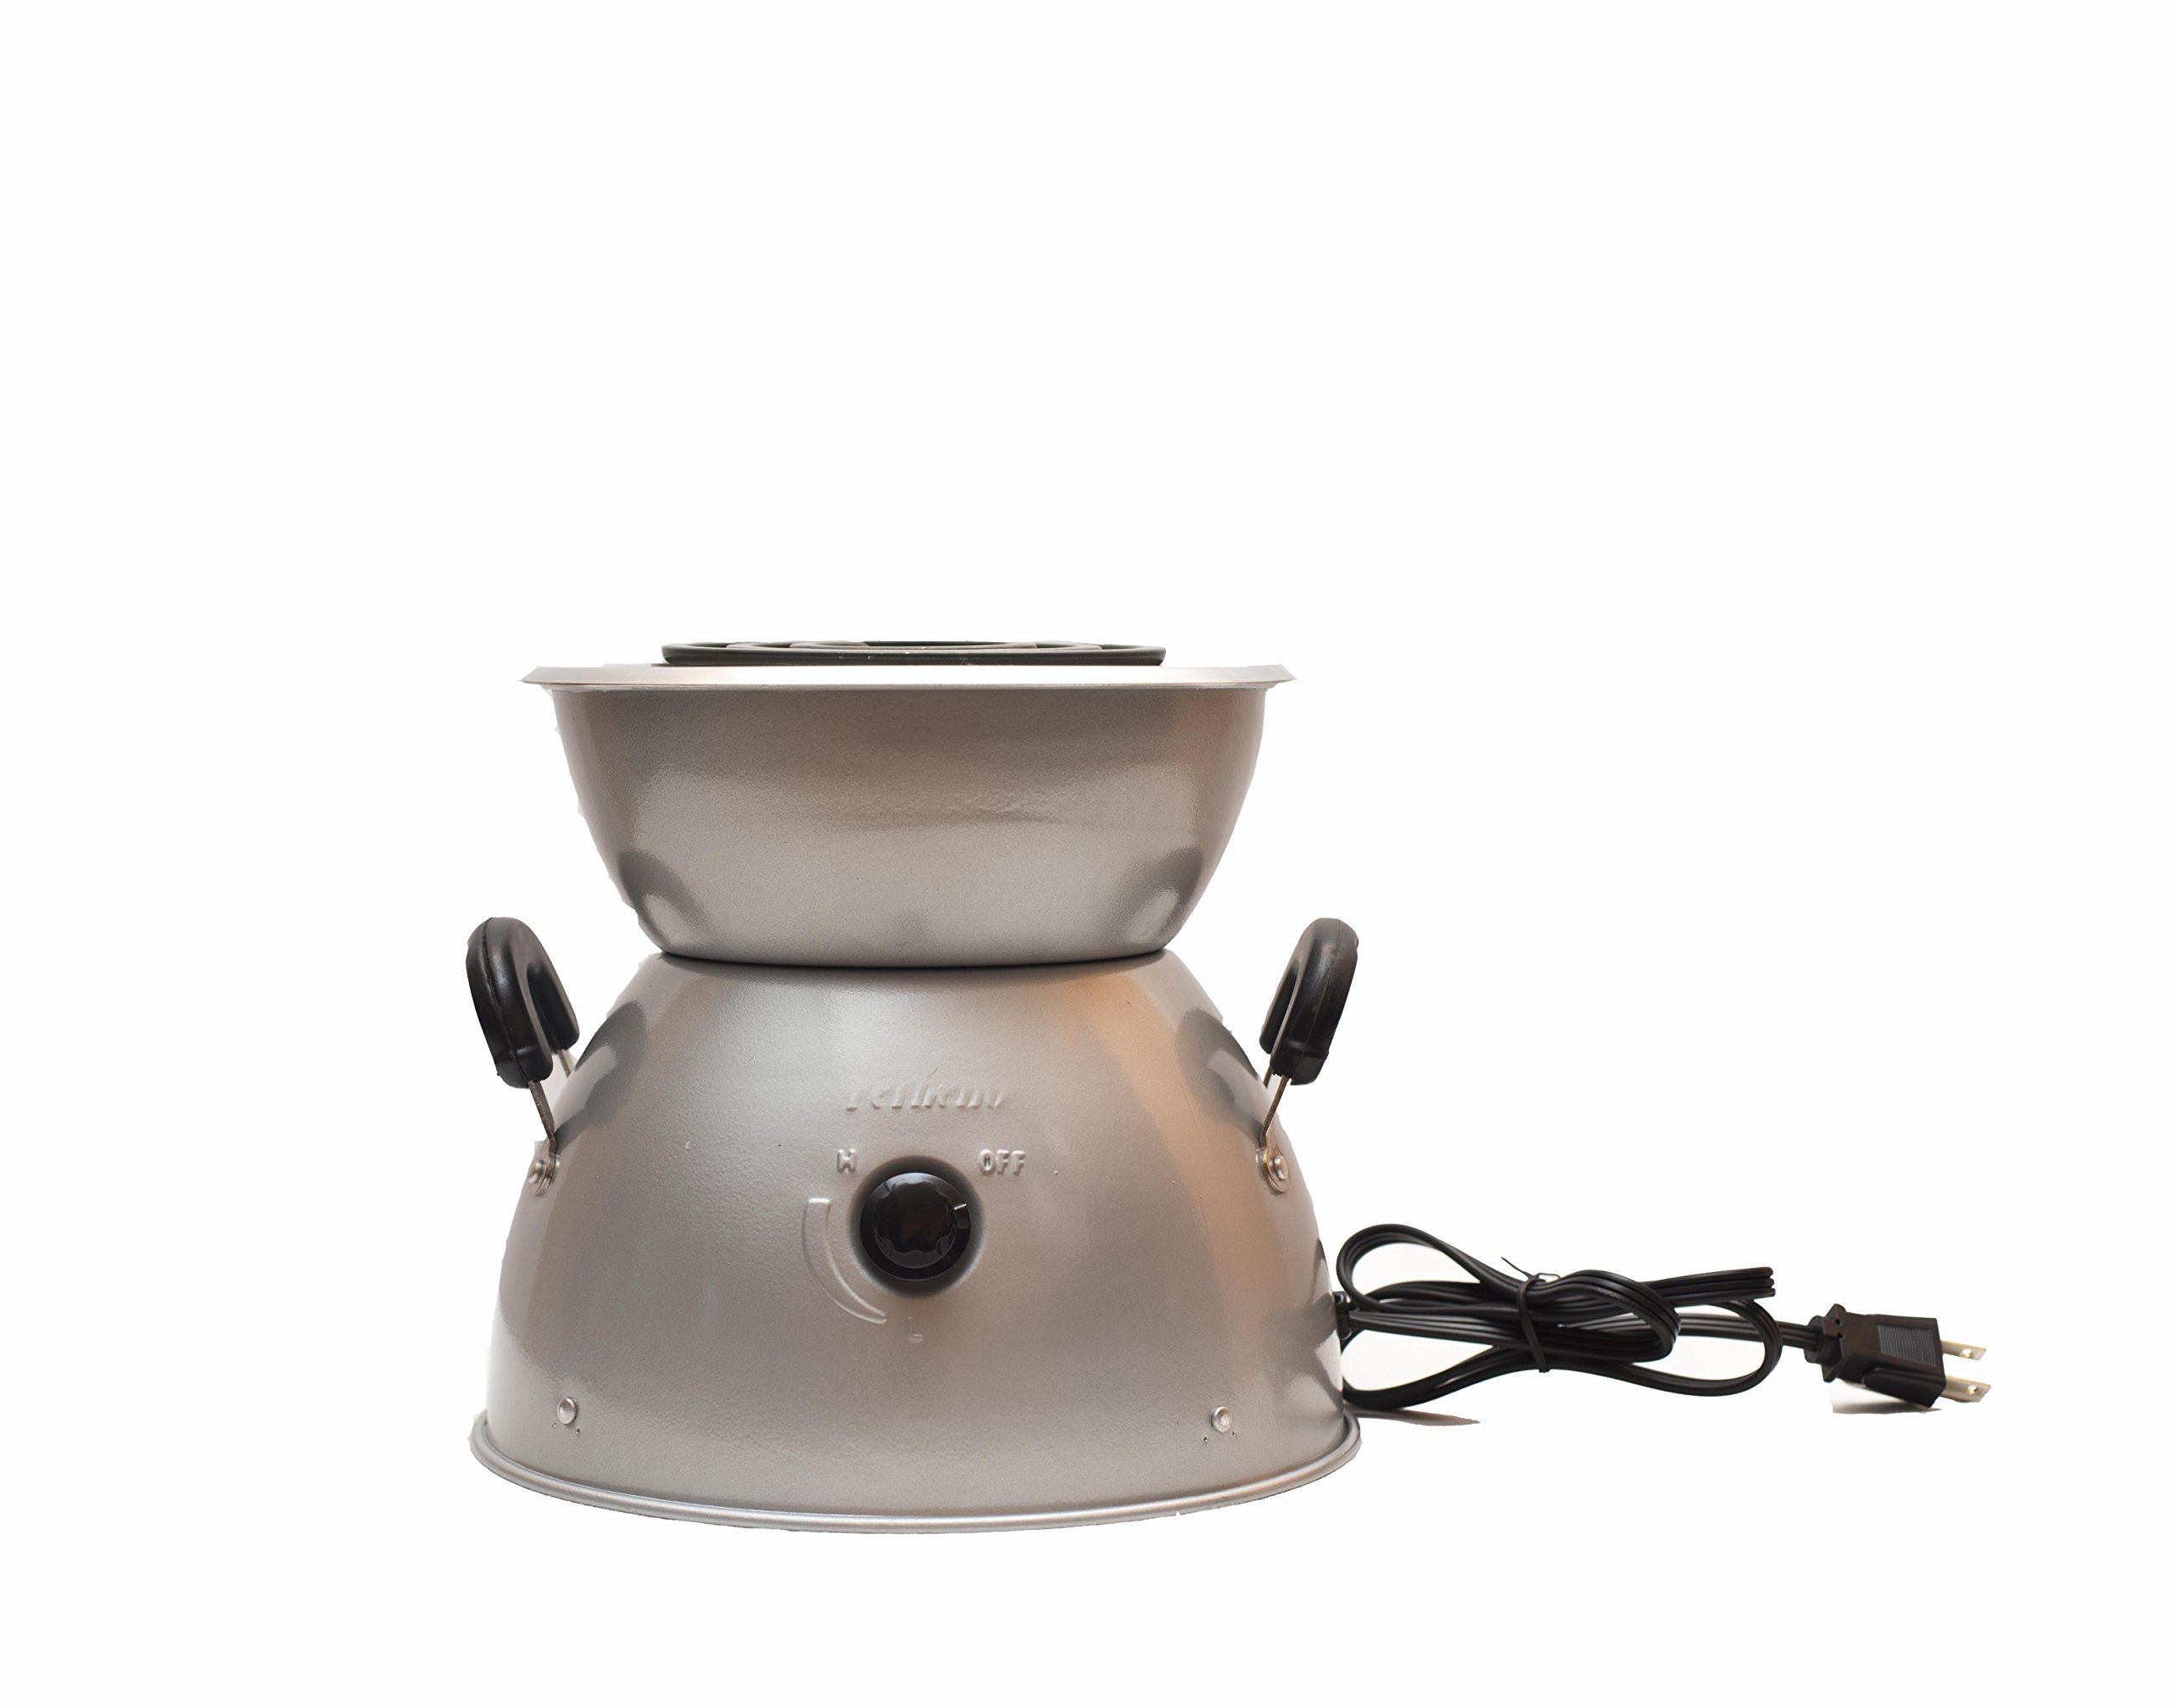 Niat Single Burner Electric Stove with Variable Temperature Control by Products. Medja or Fernelo used during Ethiopian Coffee Ceremony by Niat